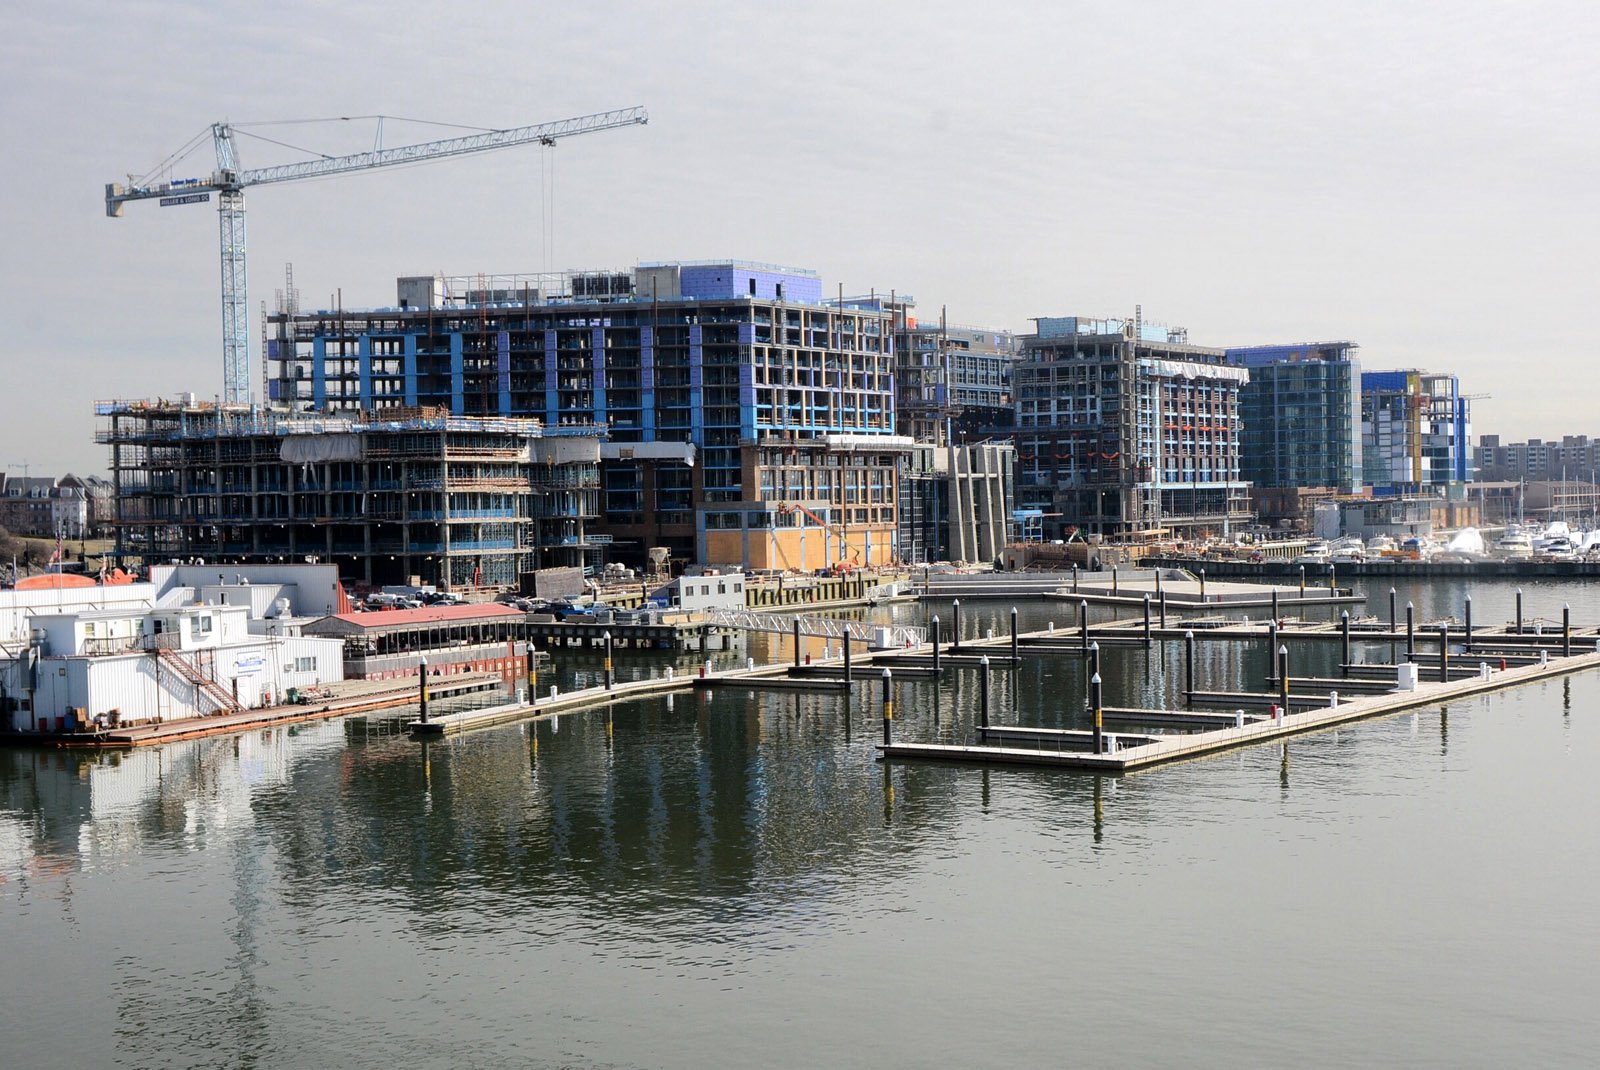 Construction continues on the new buildings that are part of The Wharf project along the Southwest Waterfront in this February 2017 file photo. (WTOP/Dave Dildine)